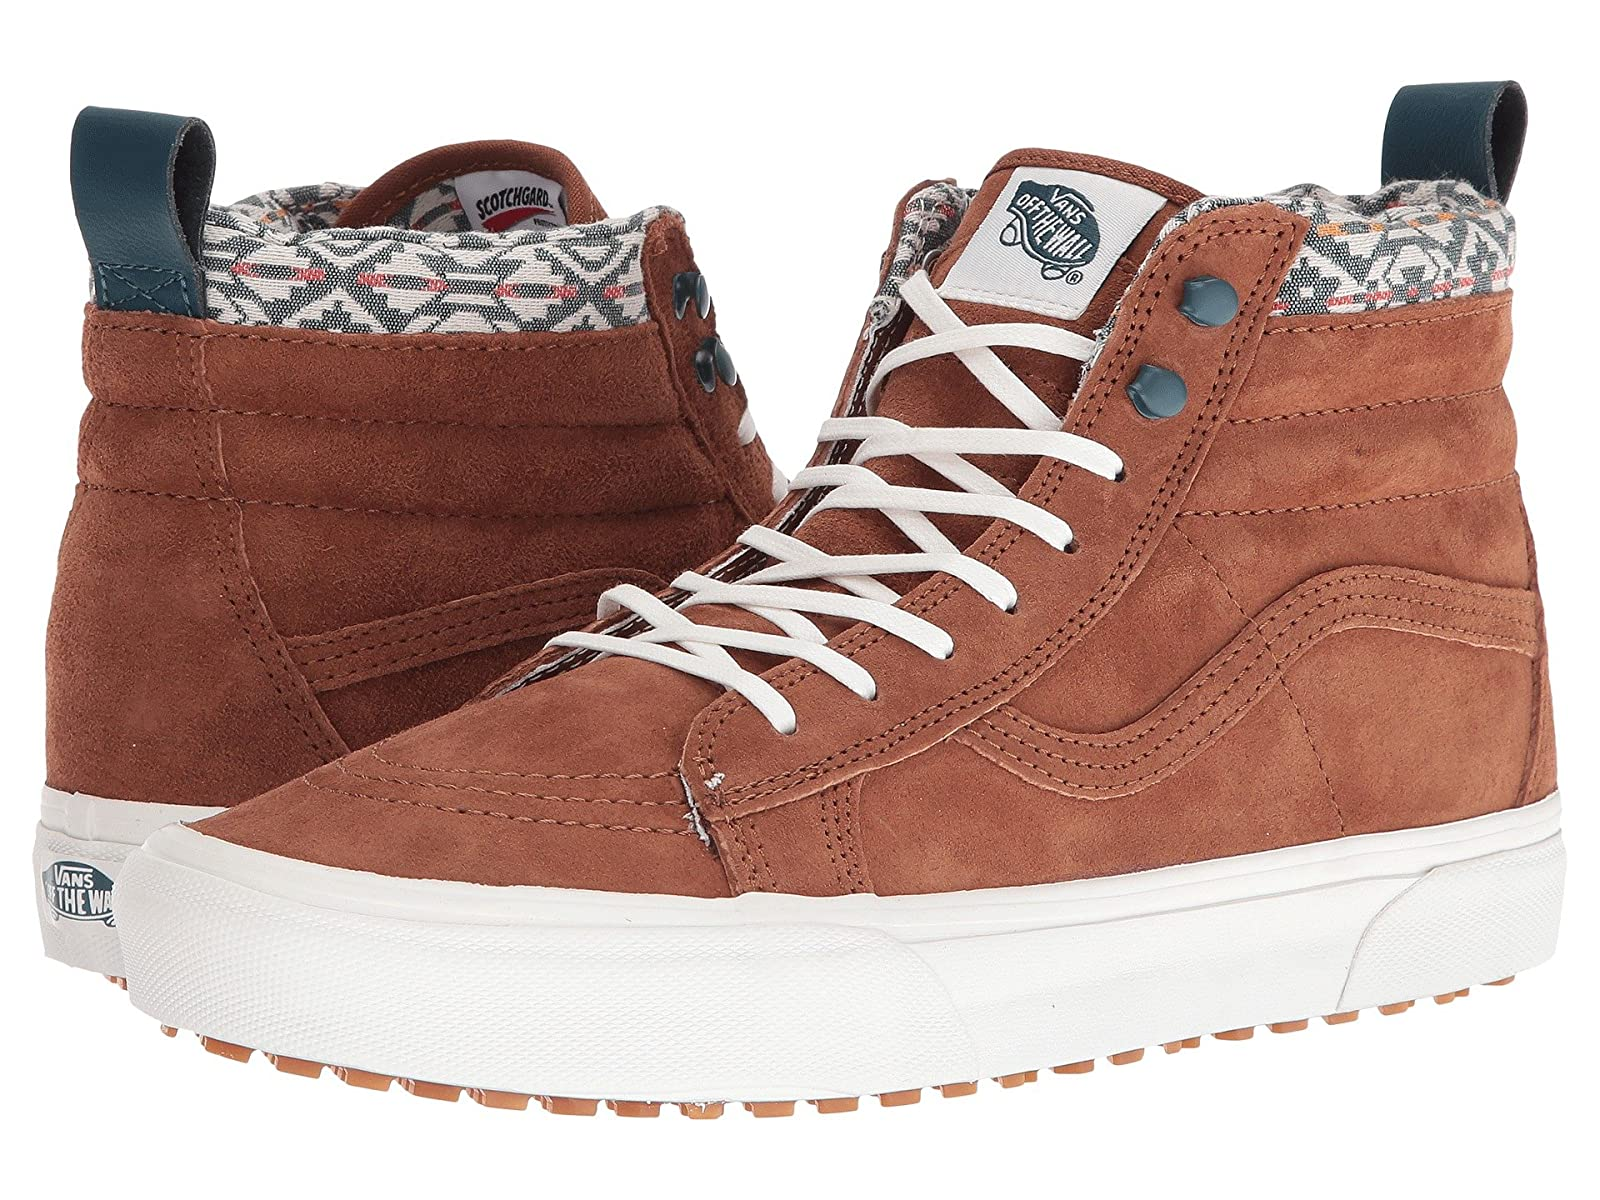 Vans SK8-Hi MTECheap and distinctive eye-catching shoes